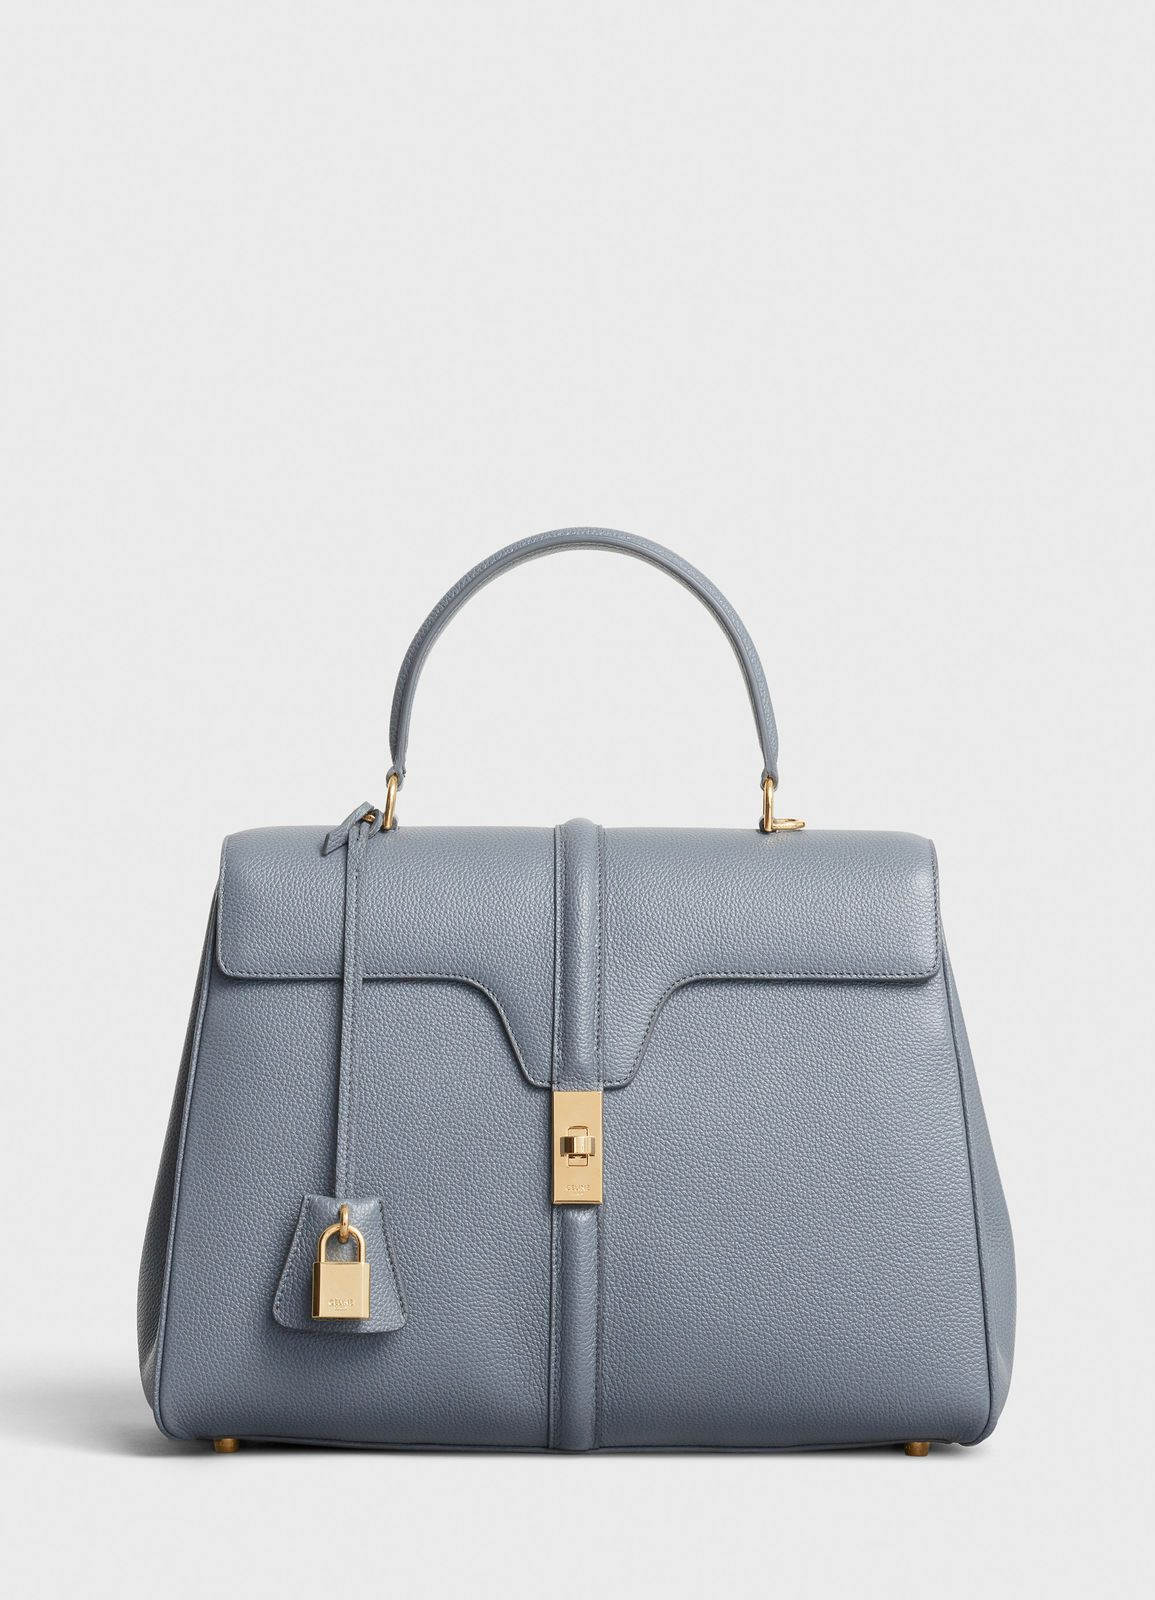 e5fb1068b1c5 Medium 16 Bag in Grained Calfskin